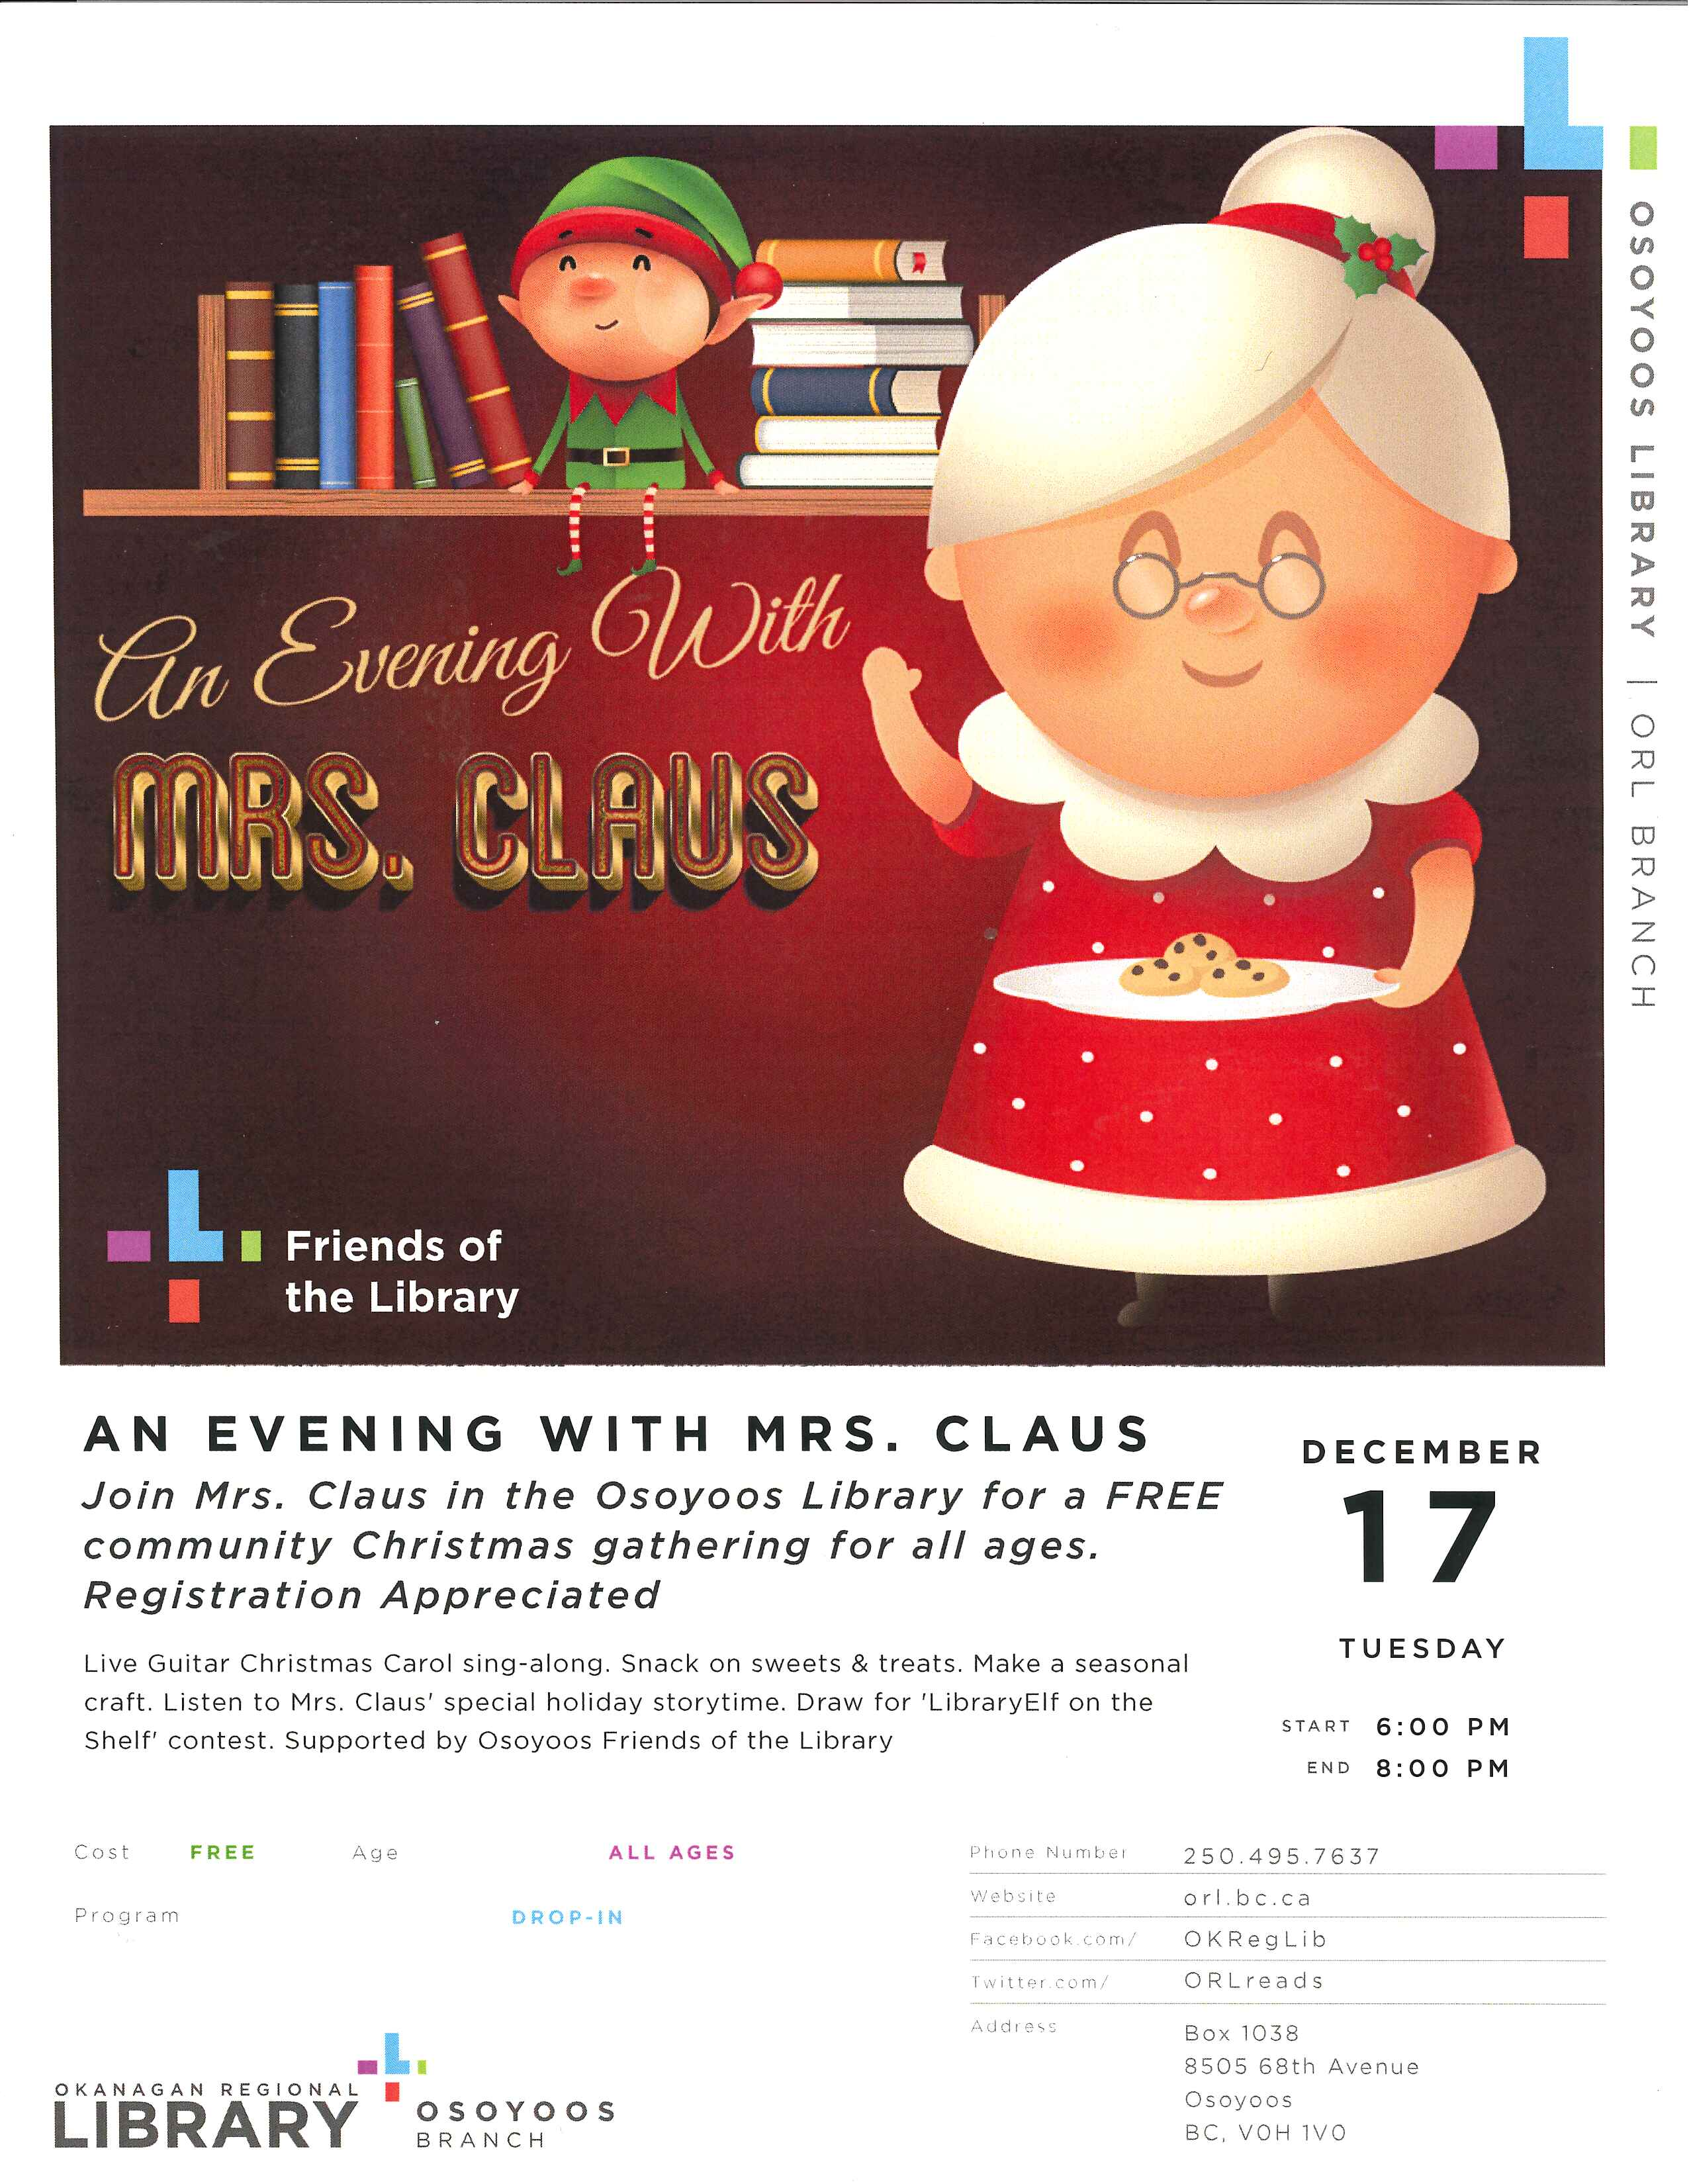 AN EVENING WITH MRS. CLAUS @ OSOYOOS LIBRARY - Dan Jones